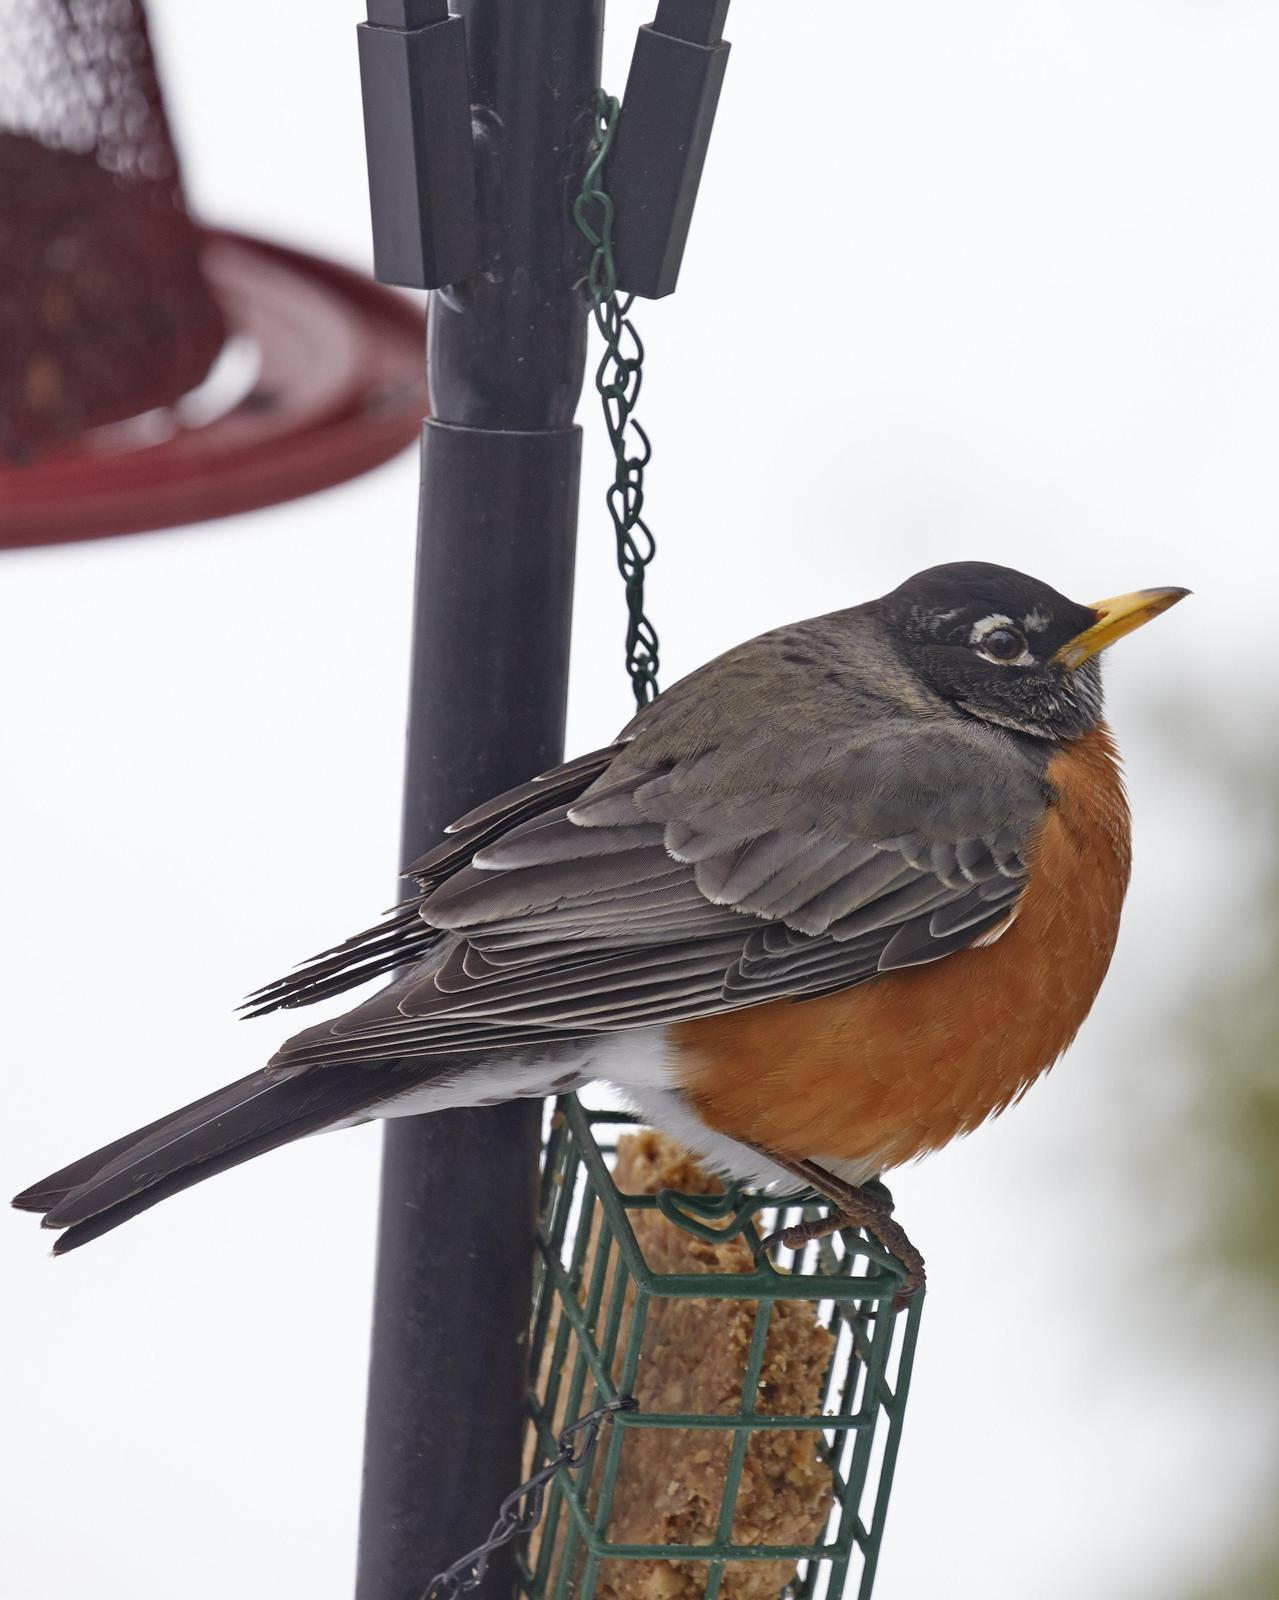 American Robin Photo by Eric Eisenstadt